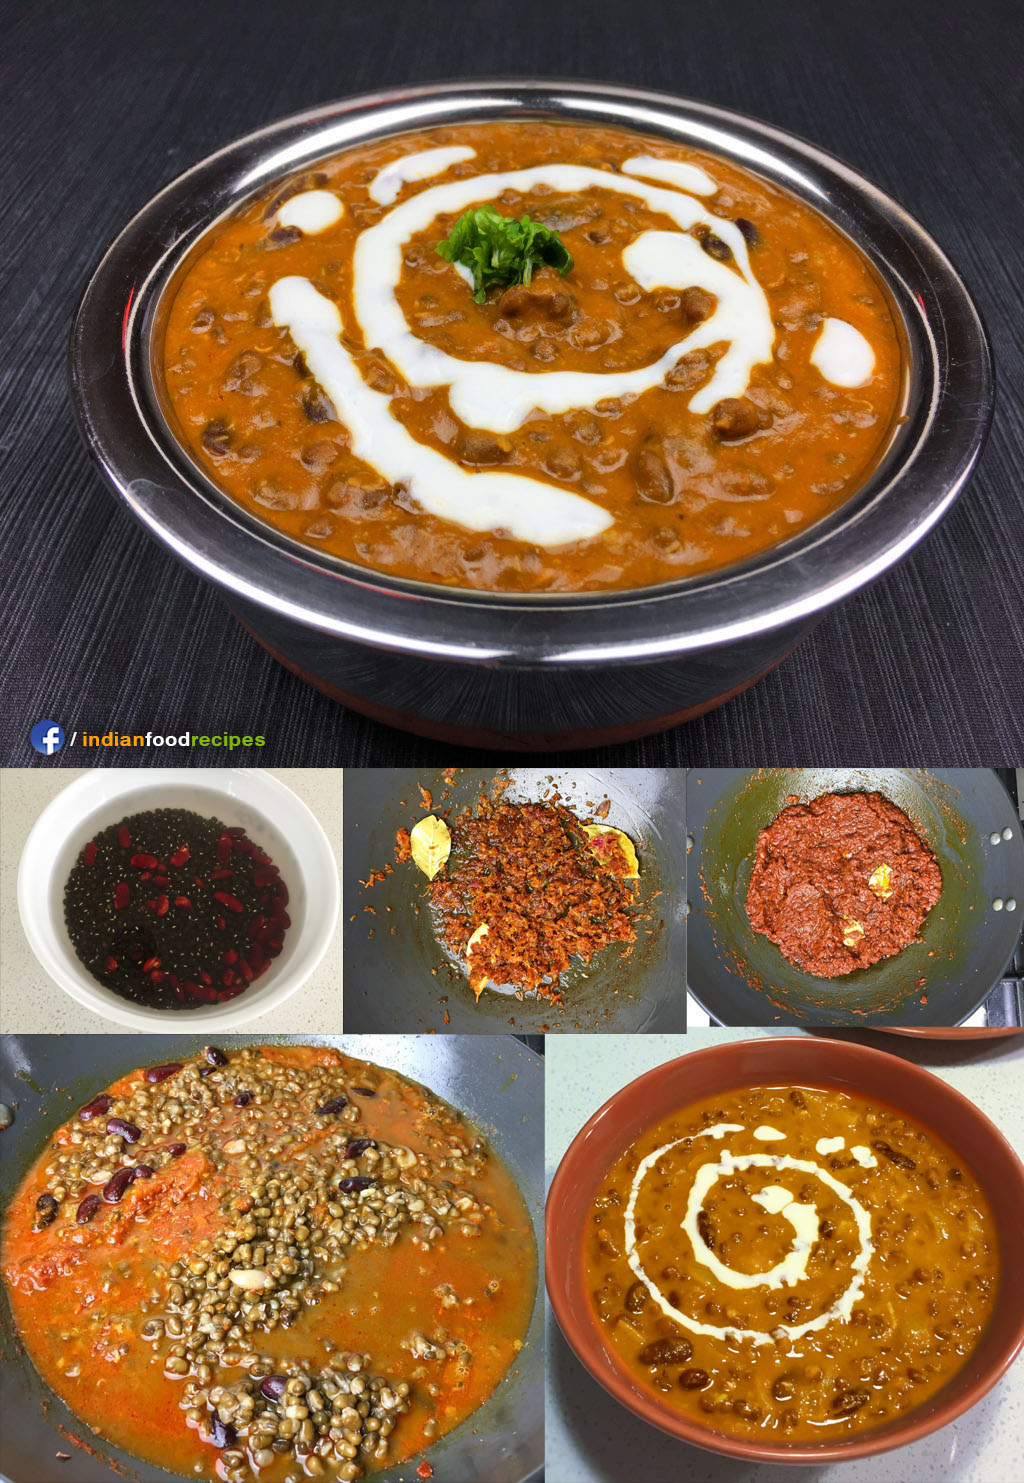 Dal Makhani recipe step by step pictures